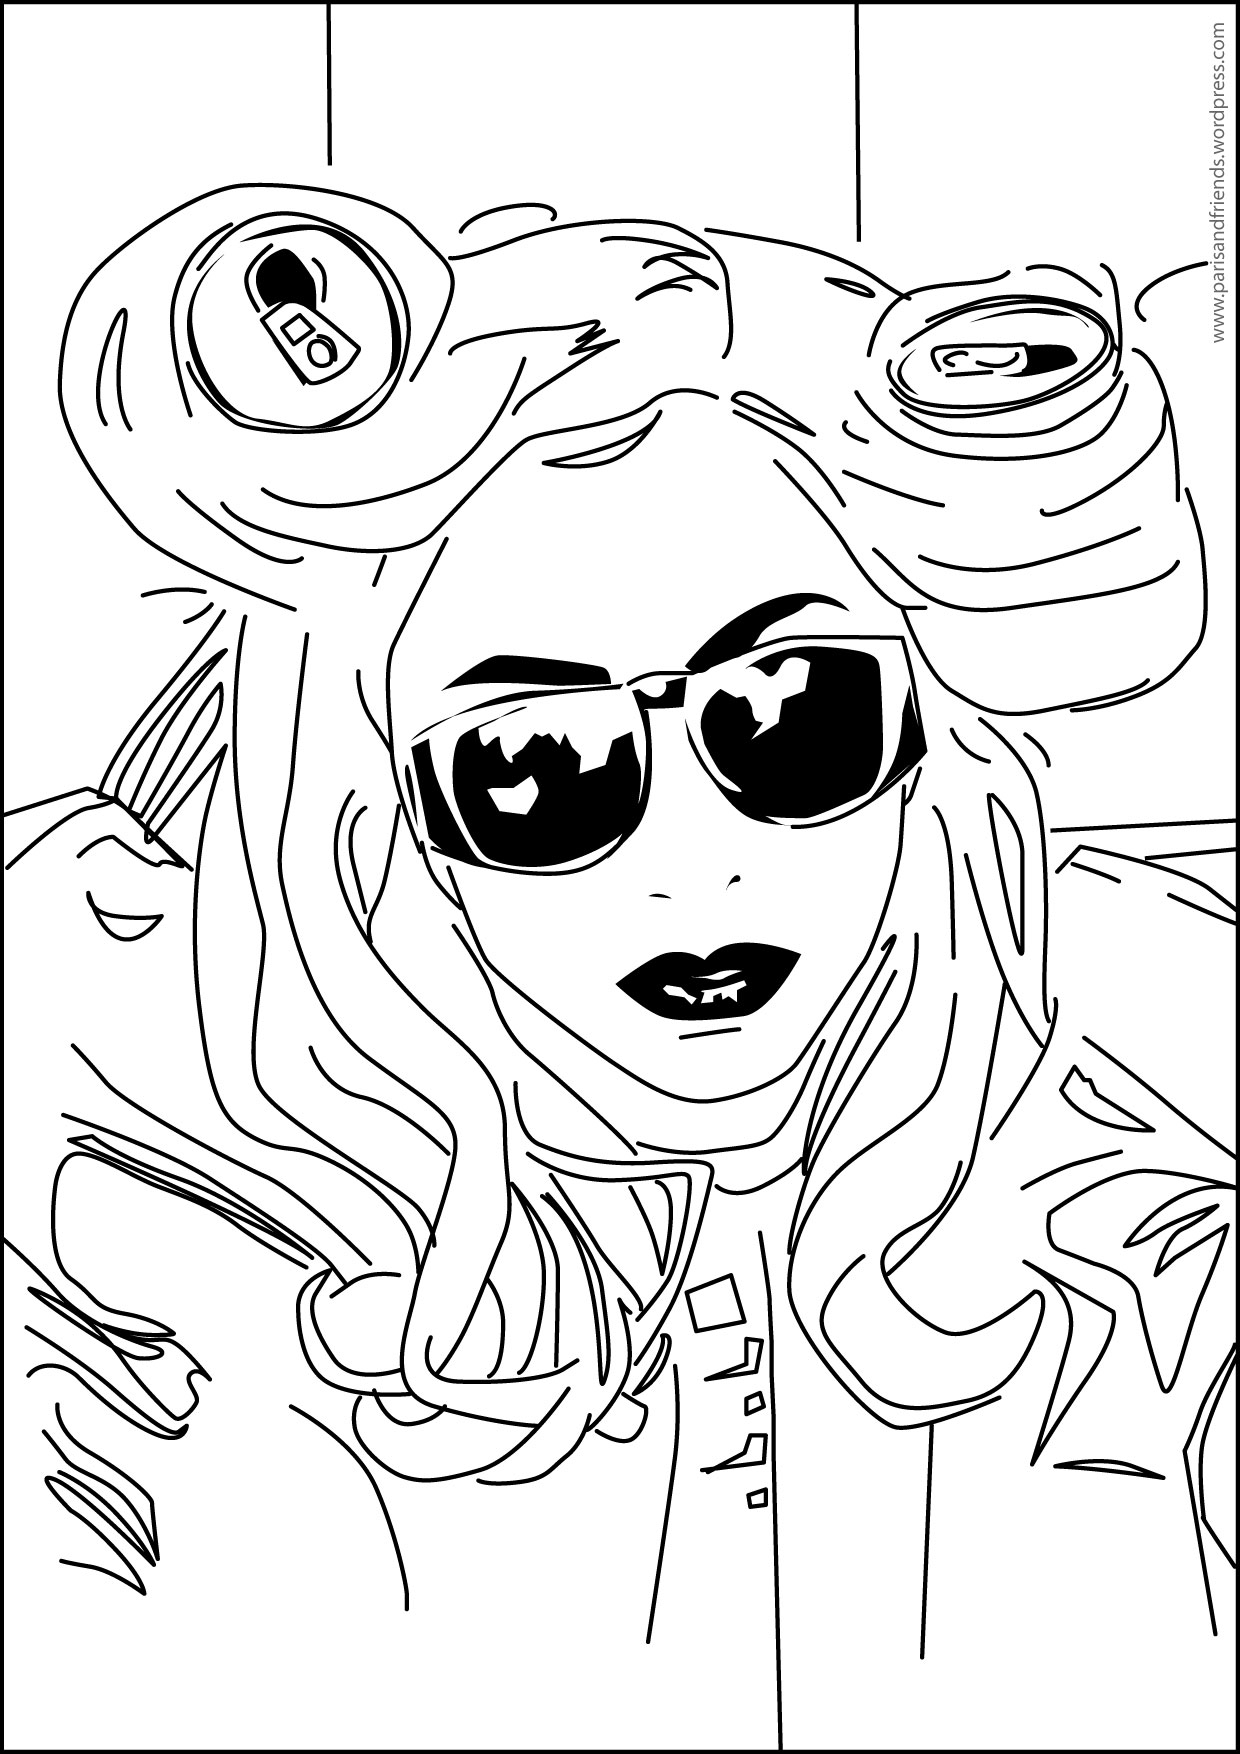 Album Lady Gaga And Aluminium Can Free Printable Coloring Pages For Kids Colouring Pages